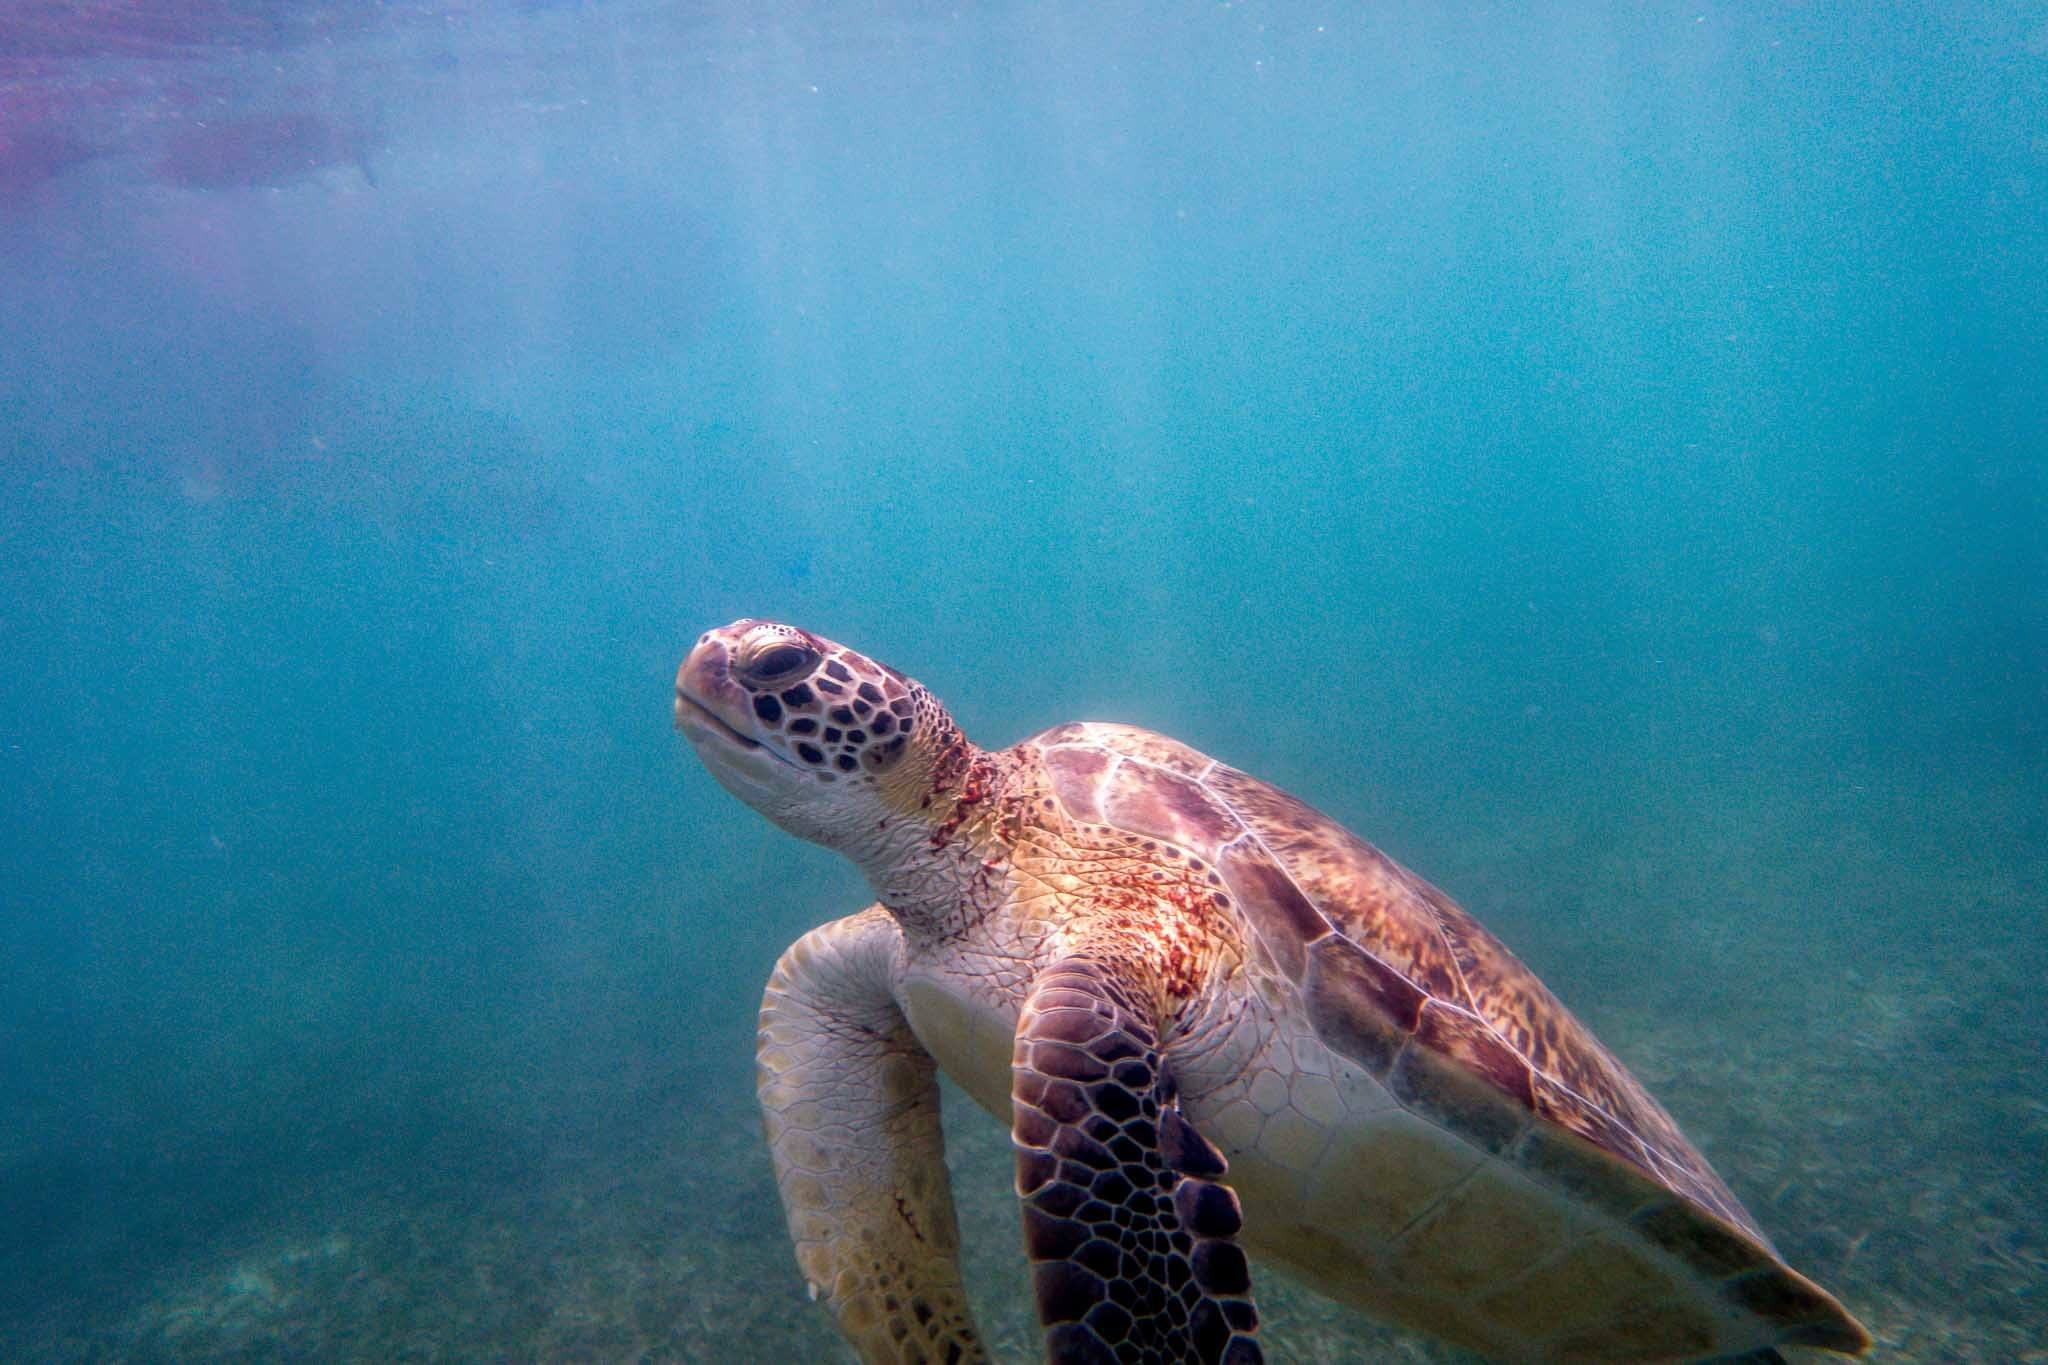 One of the Akumal turtles coming up for air during our Akumal snorkeling adventure.